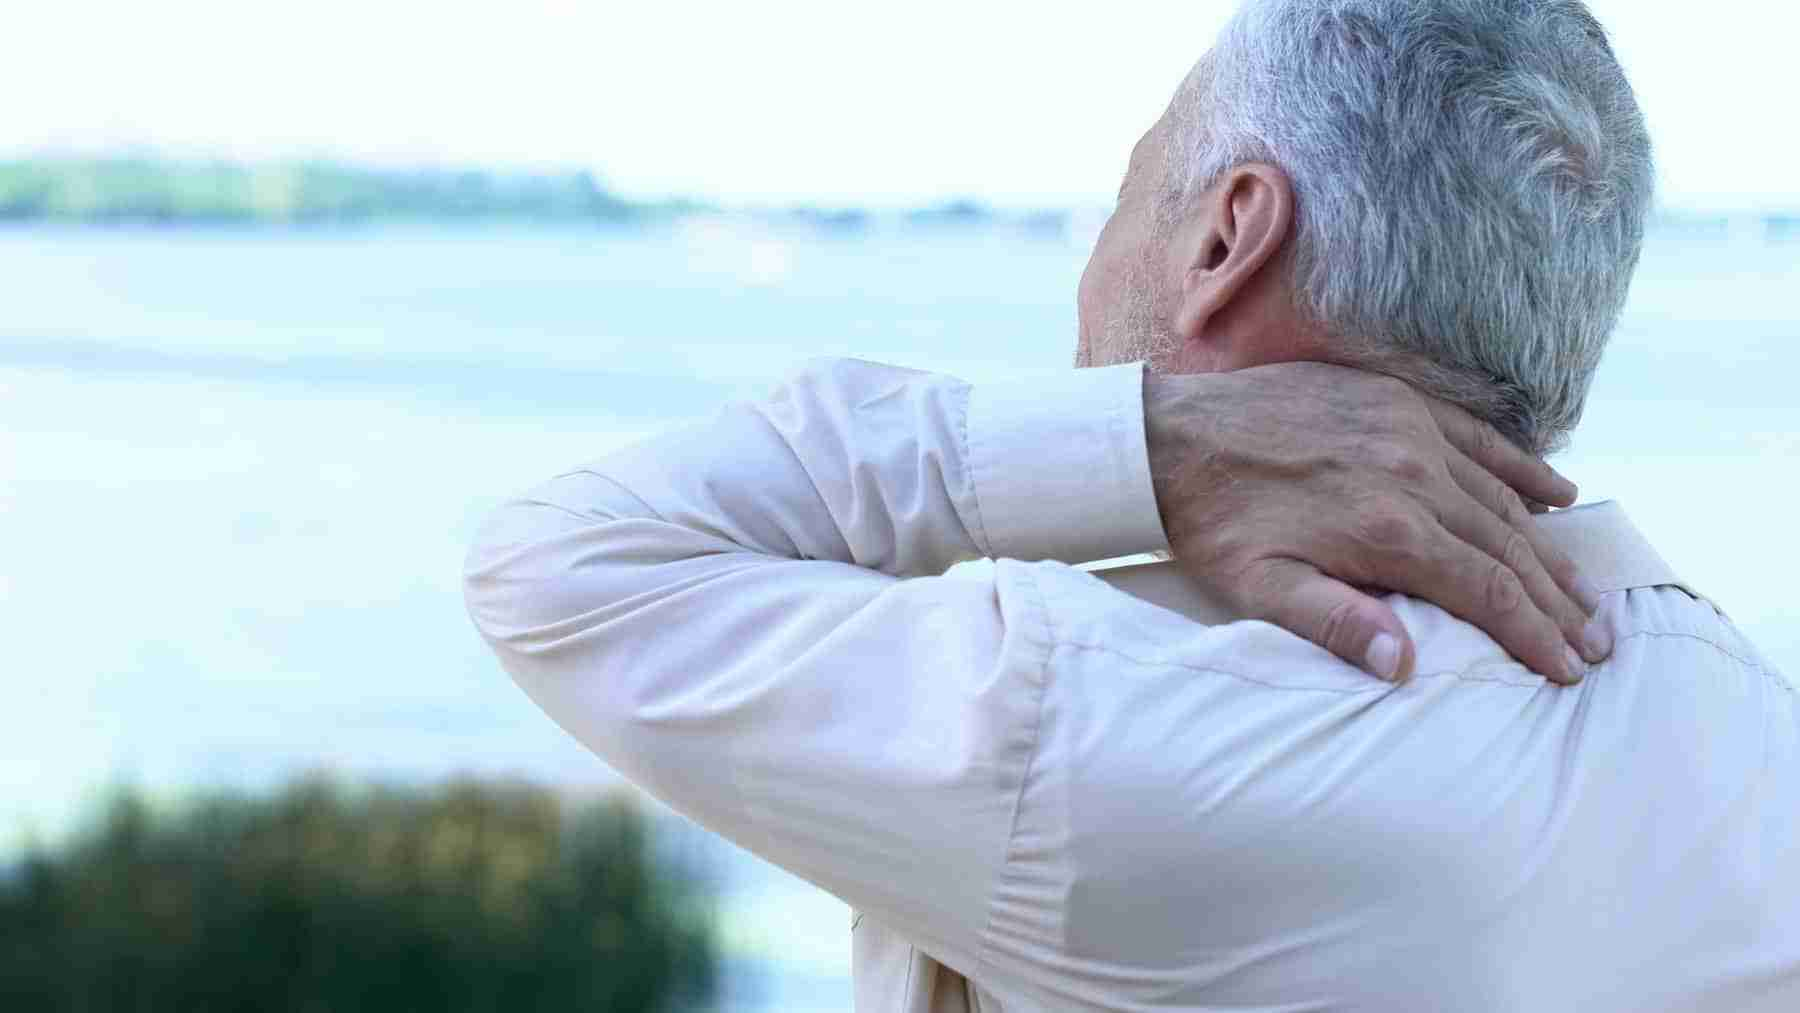 Man holding back of neck in pain